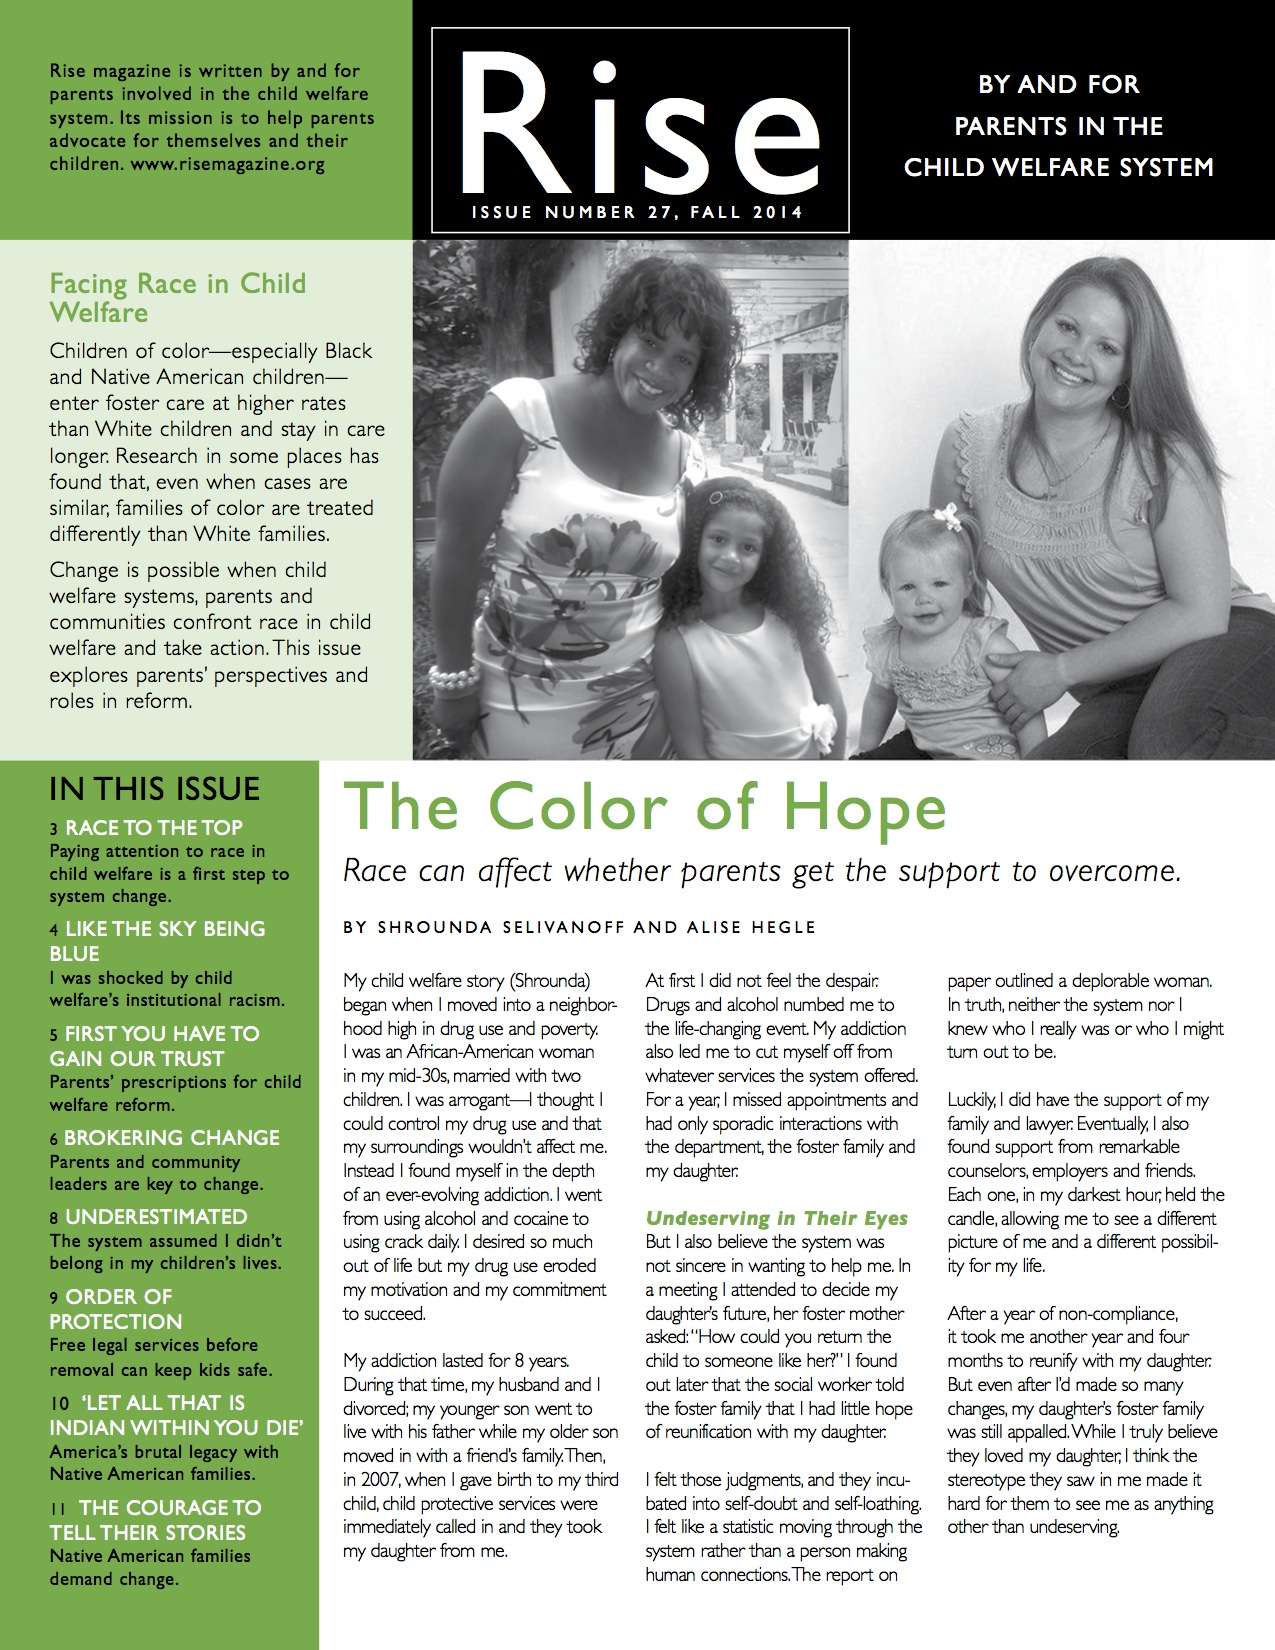 Facing Race in Child Welfare product image